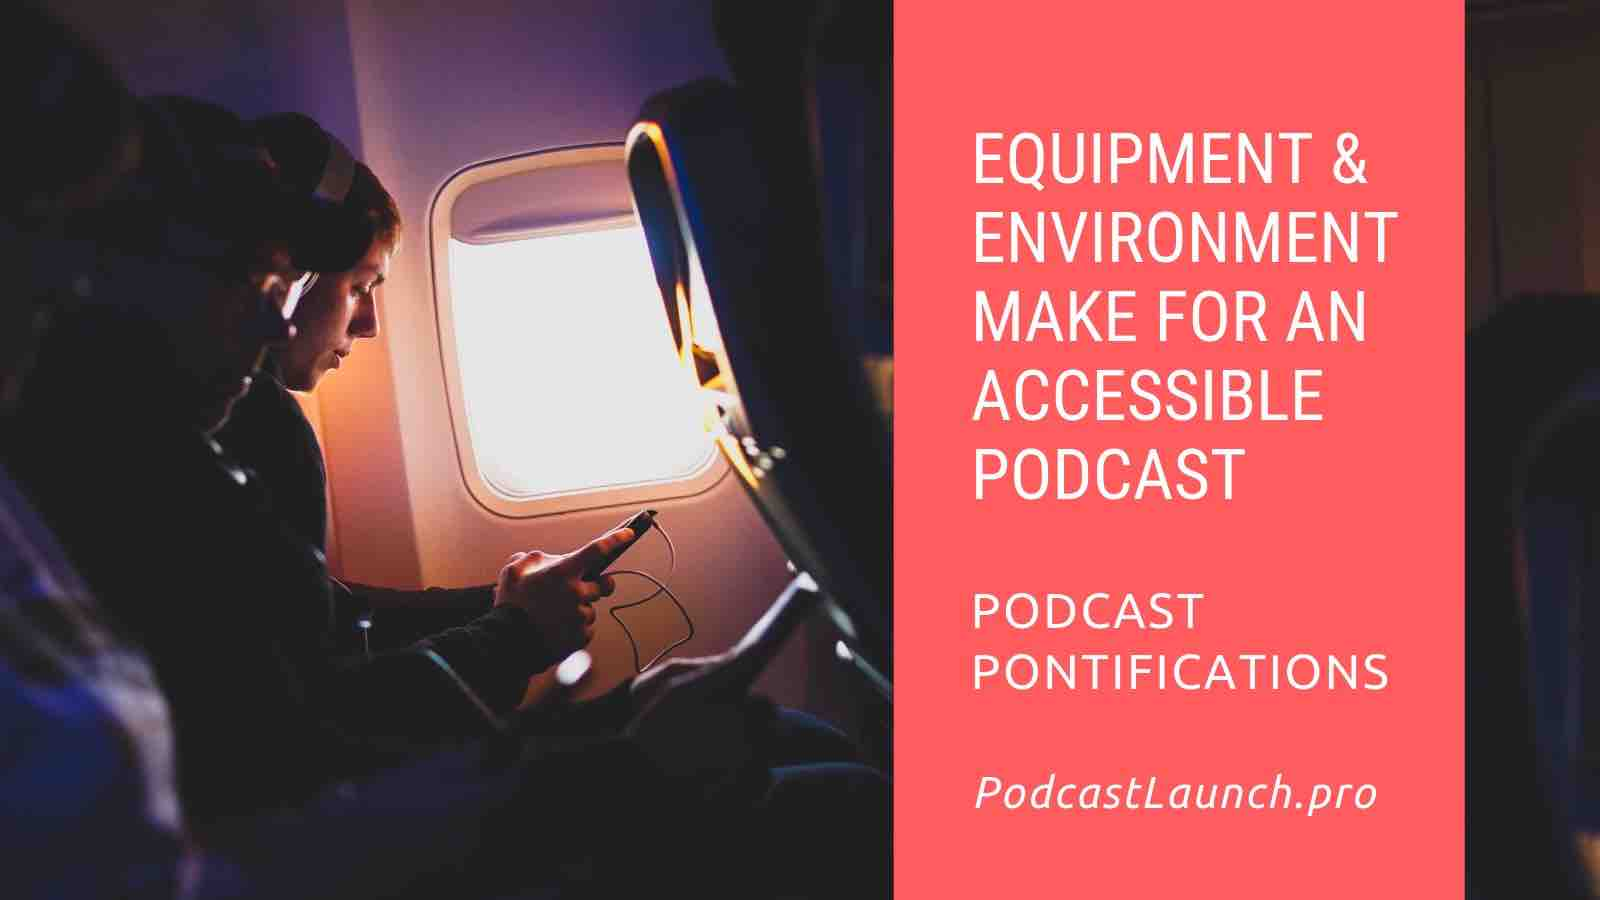 Make An Accessible Podcast With The Right Equipment & Environment